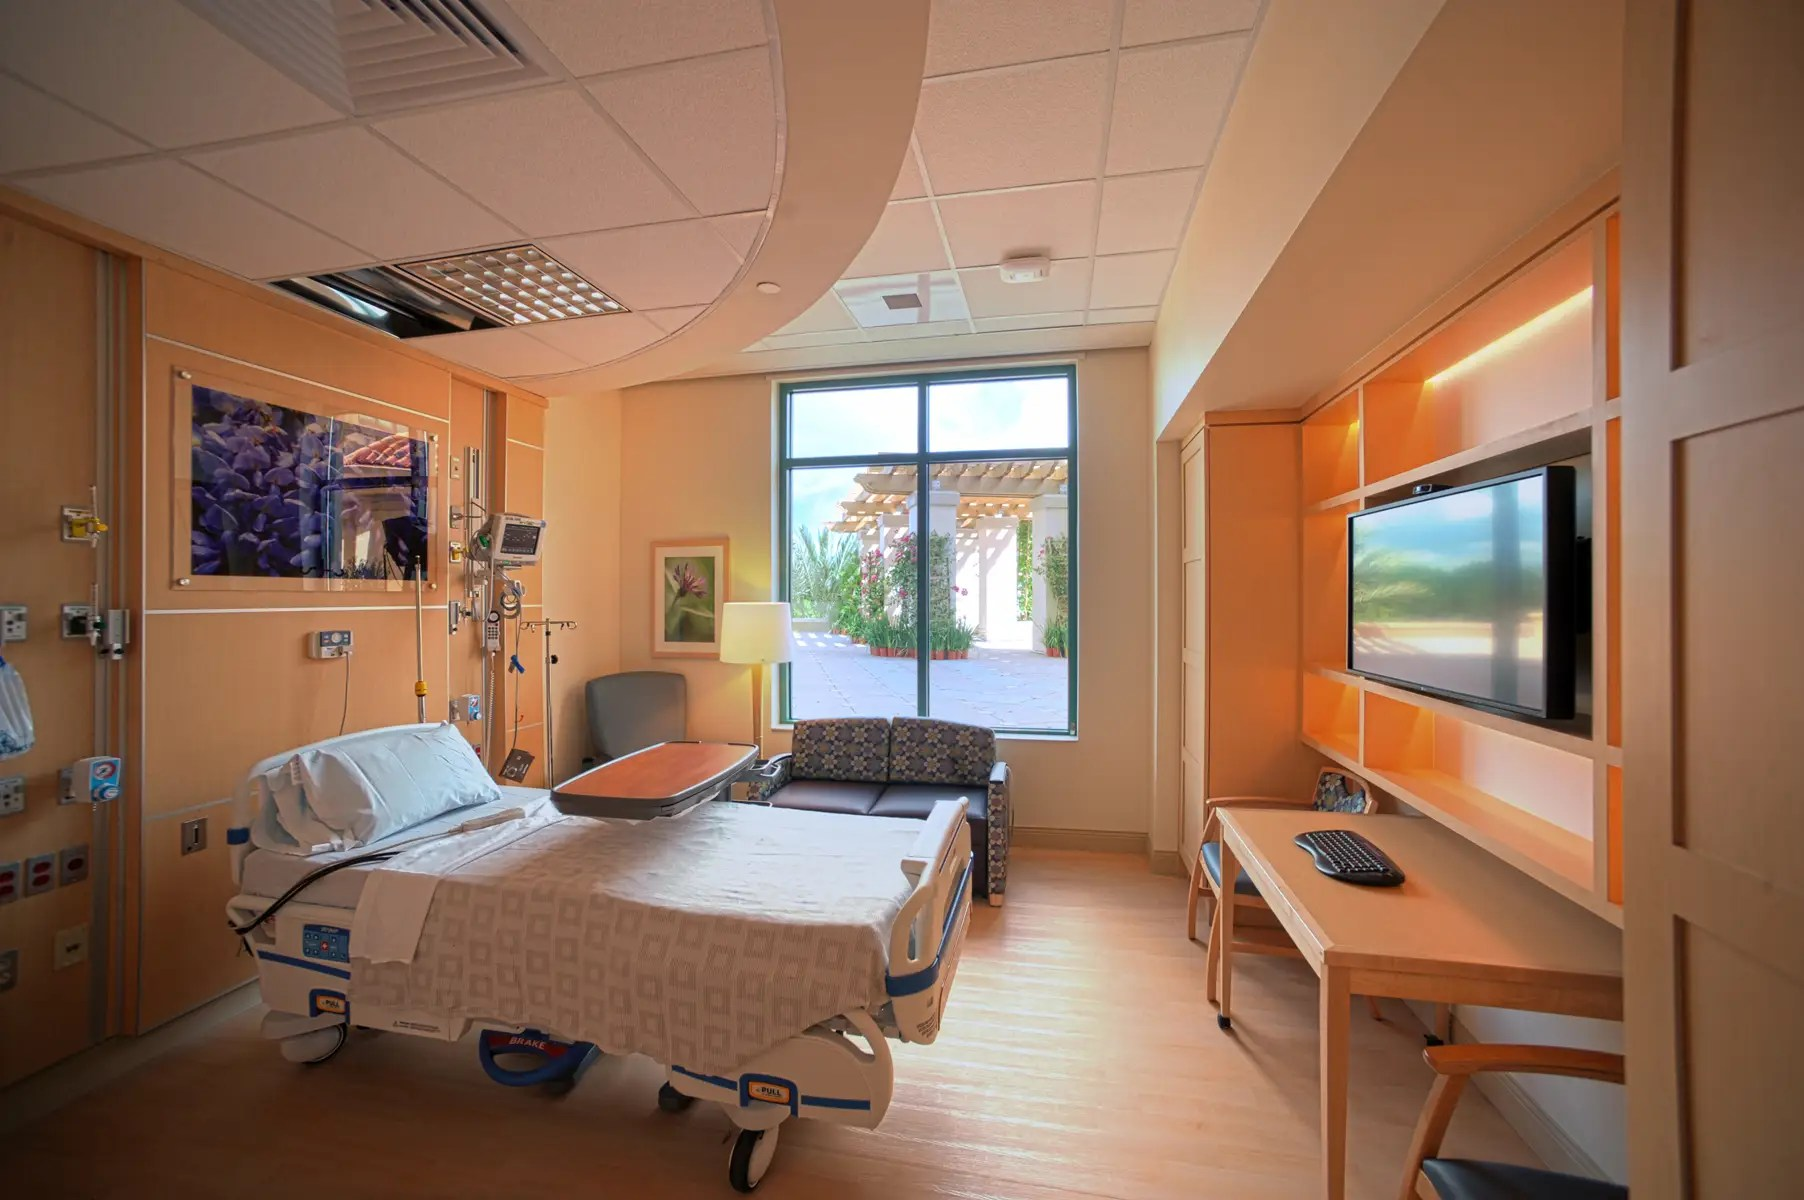 Hospitals In The Future Will Look Totally Different